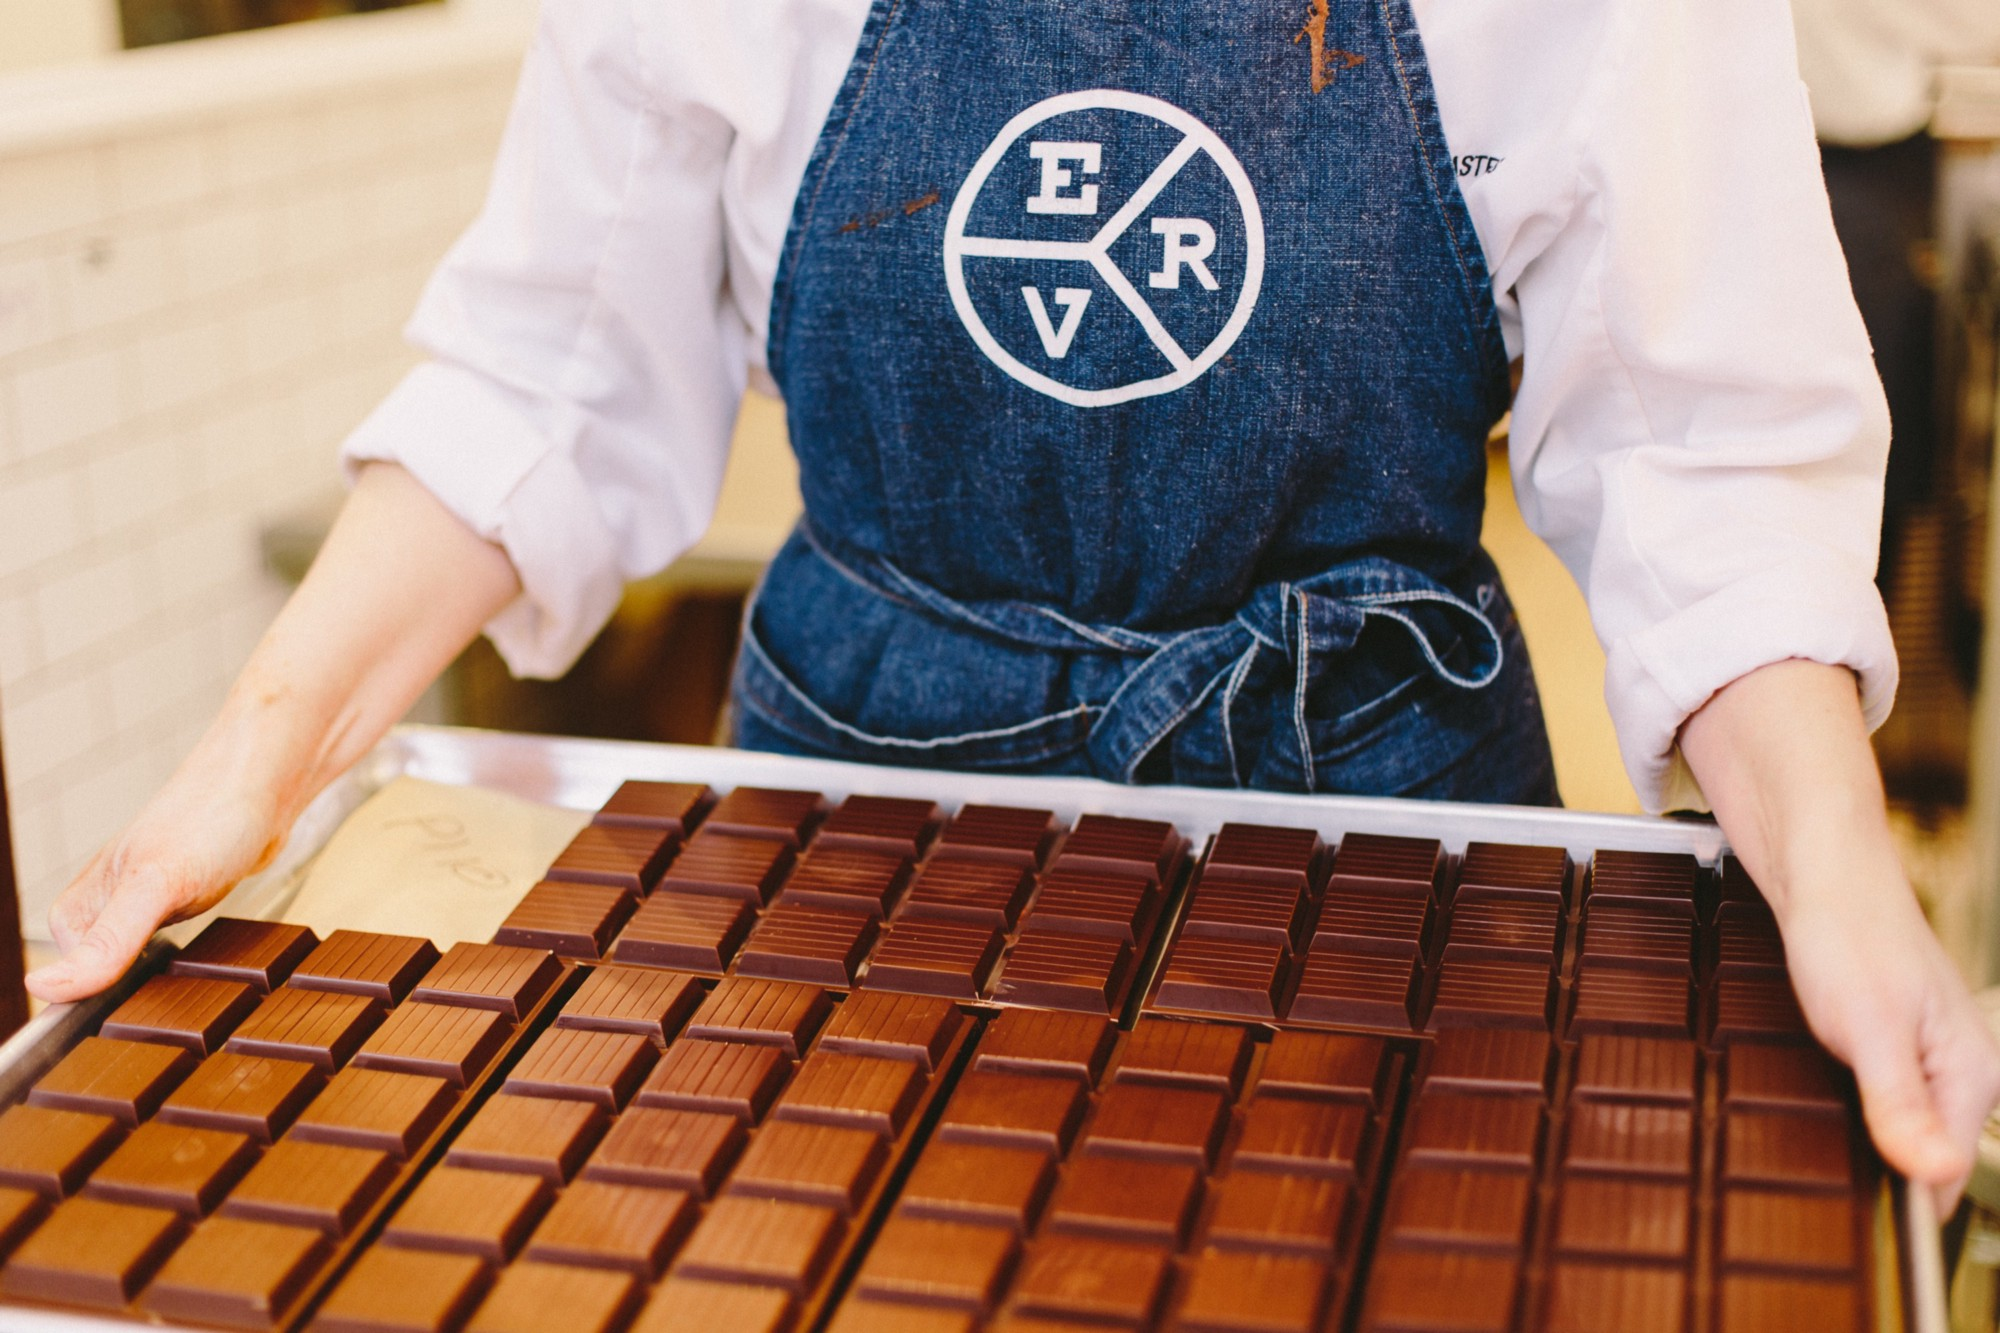 A tray of chocolate bars from East Van Roasters